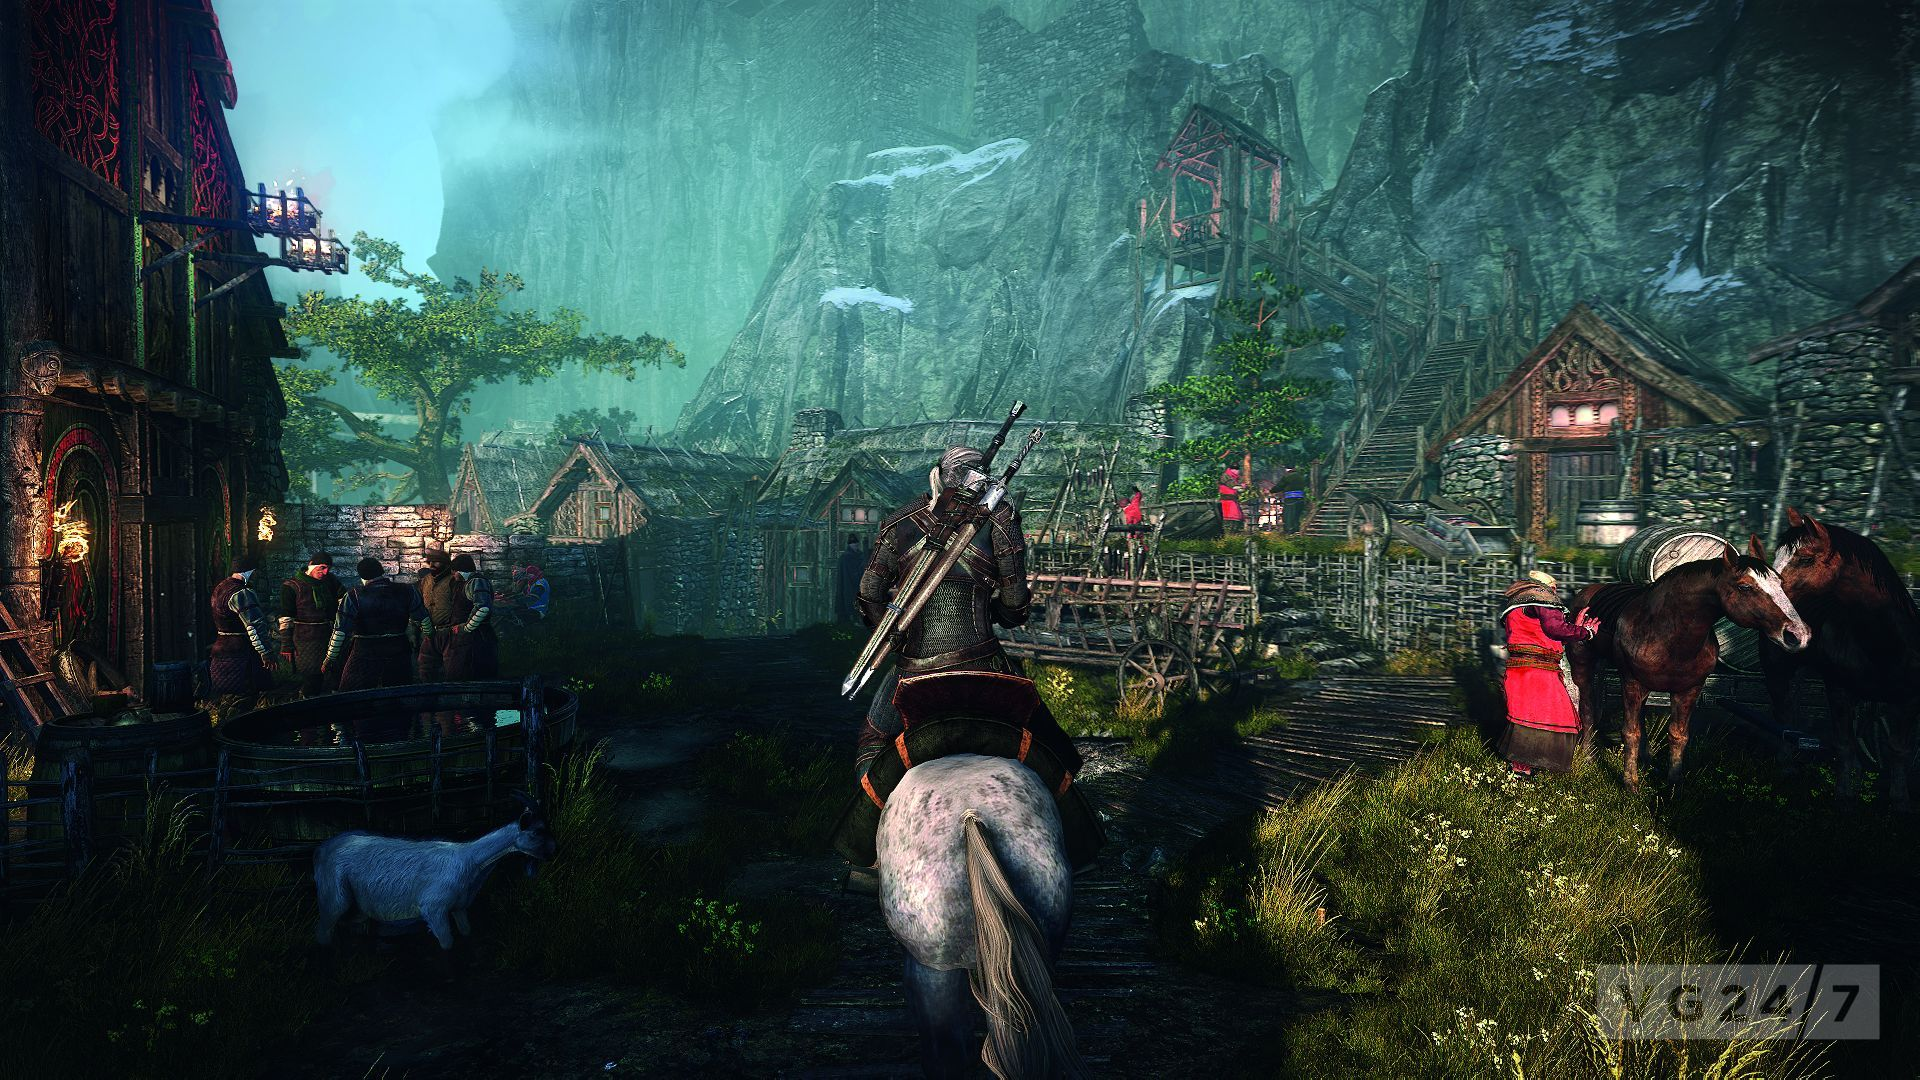 O lume open world in The Witcher 3 : Wild Hunt